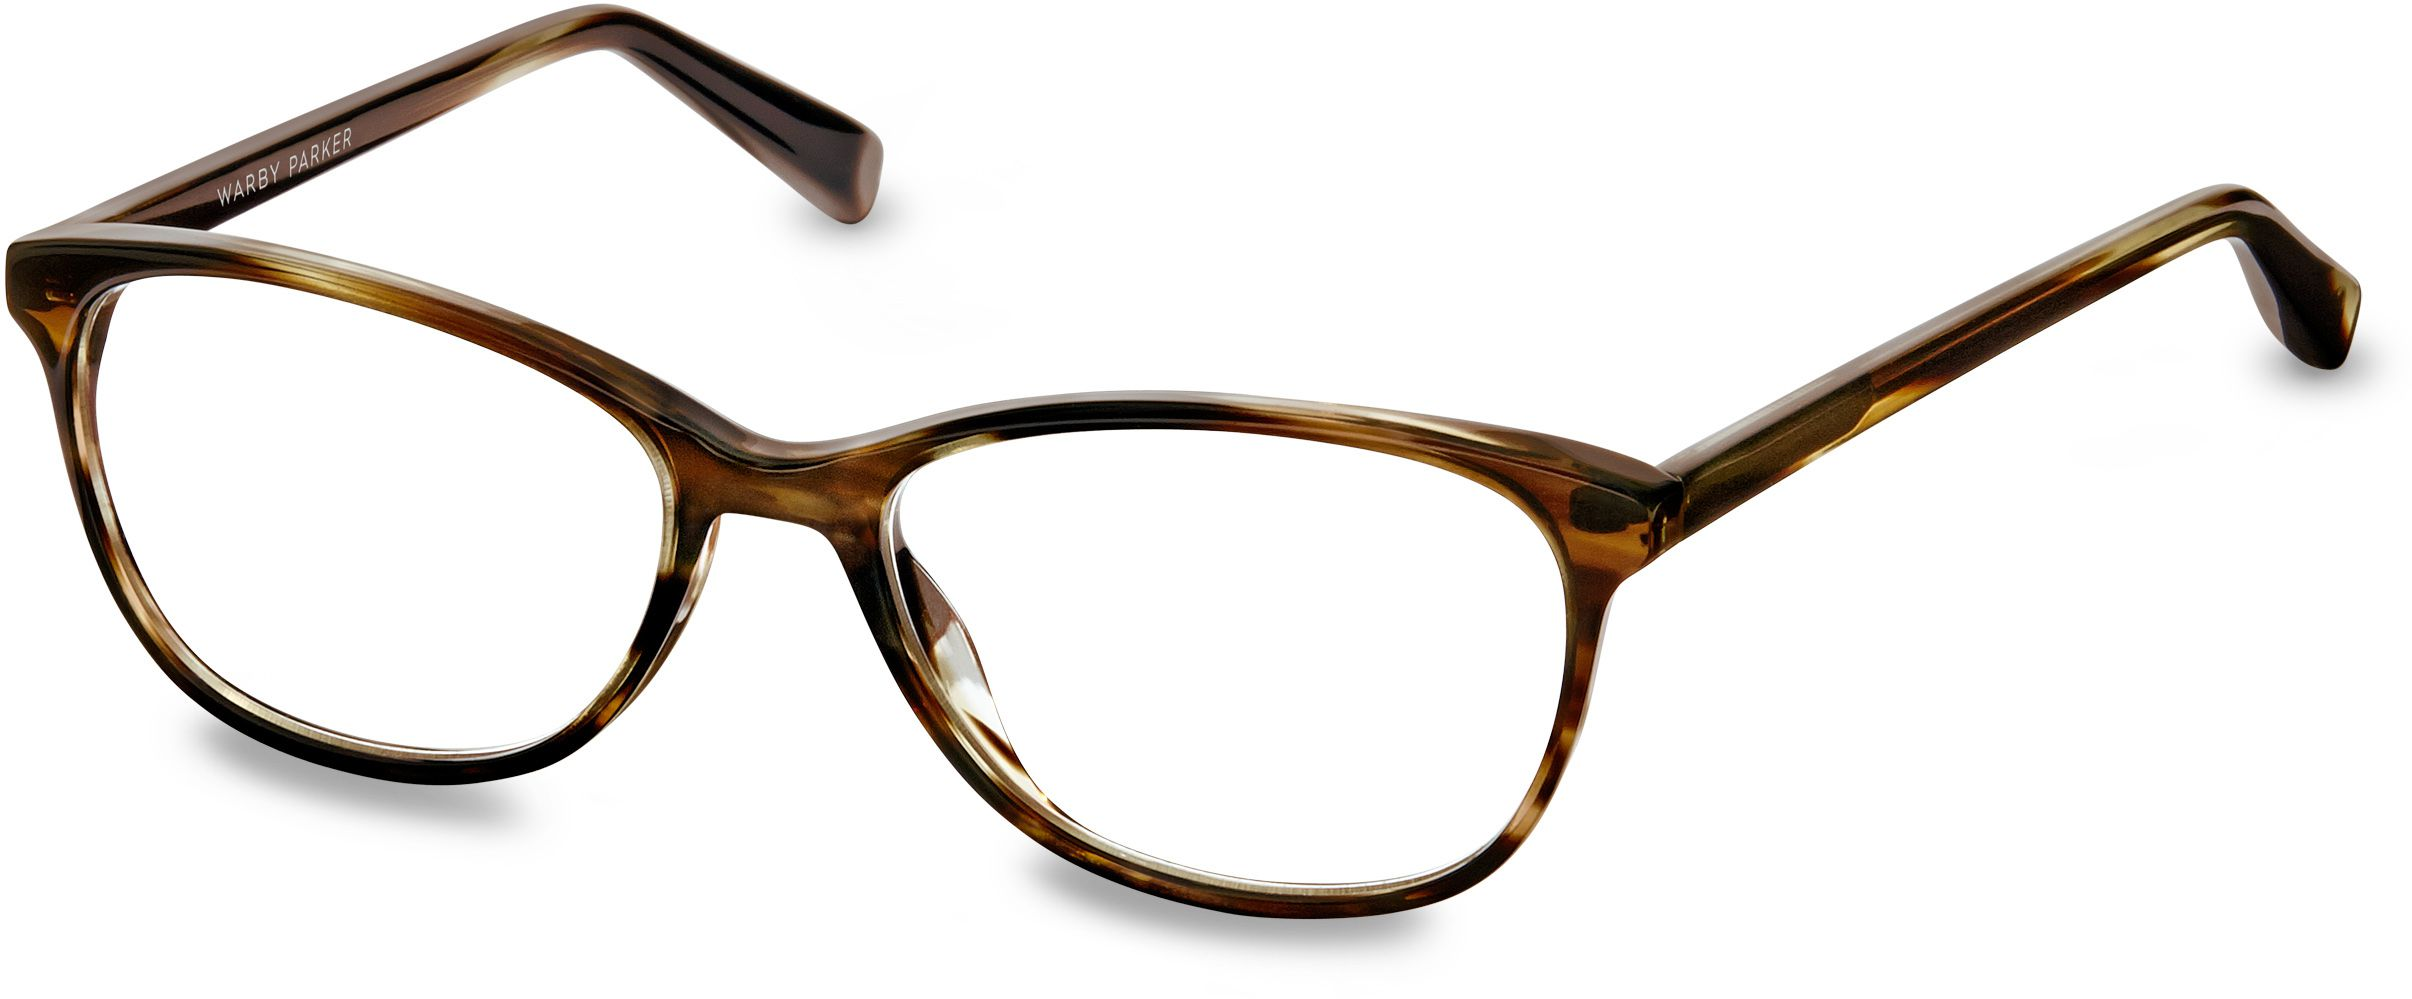 daisy eyeglasses in striped molasses for women warby parker